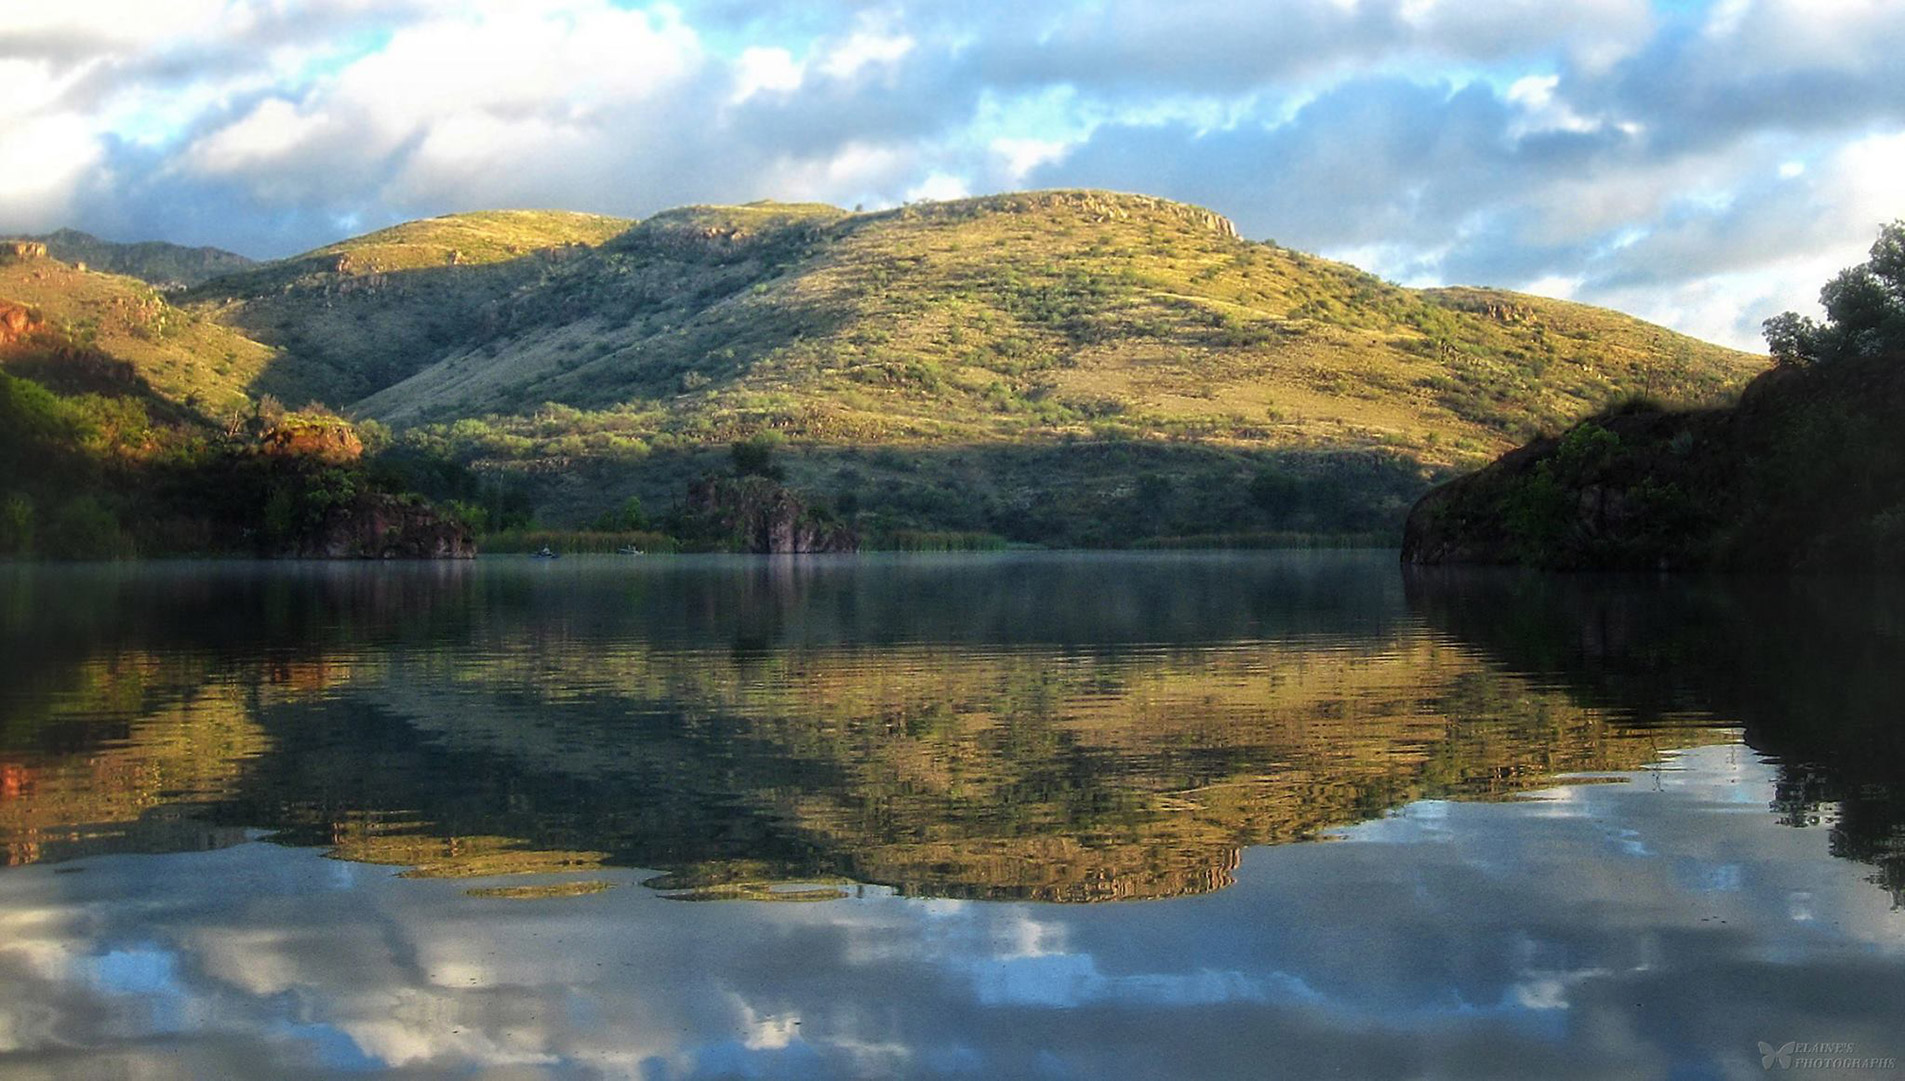 A reflection of the illuminated  hillside in the calm, still waters of Pena Blanca Lake.